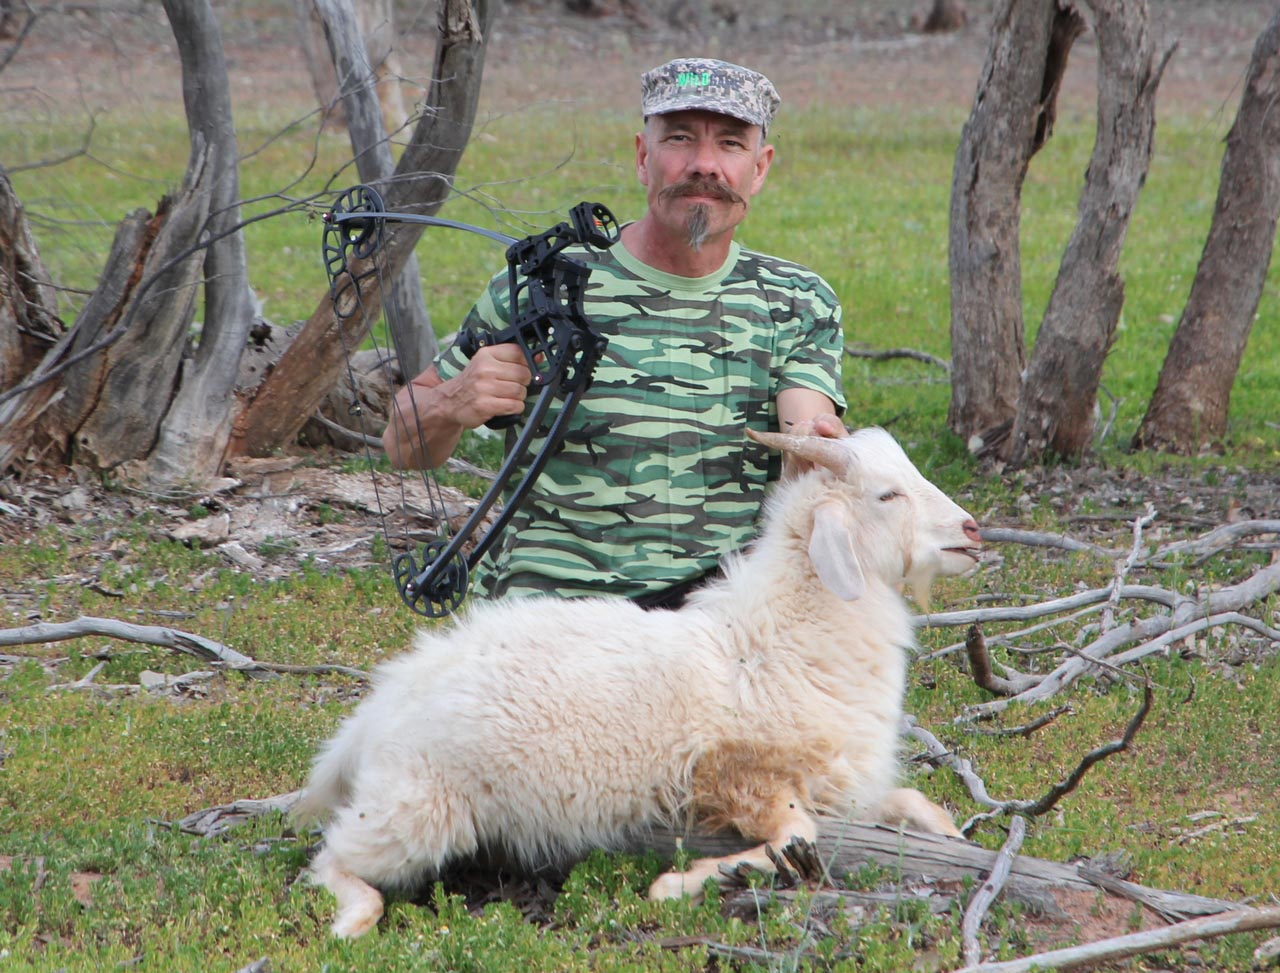 The SR Xtreme may be small, but it delivered a 100g broadhead-tipped arrow with full penetration on this midsized goat.